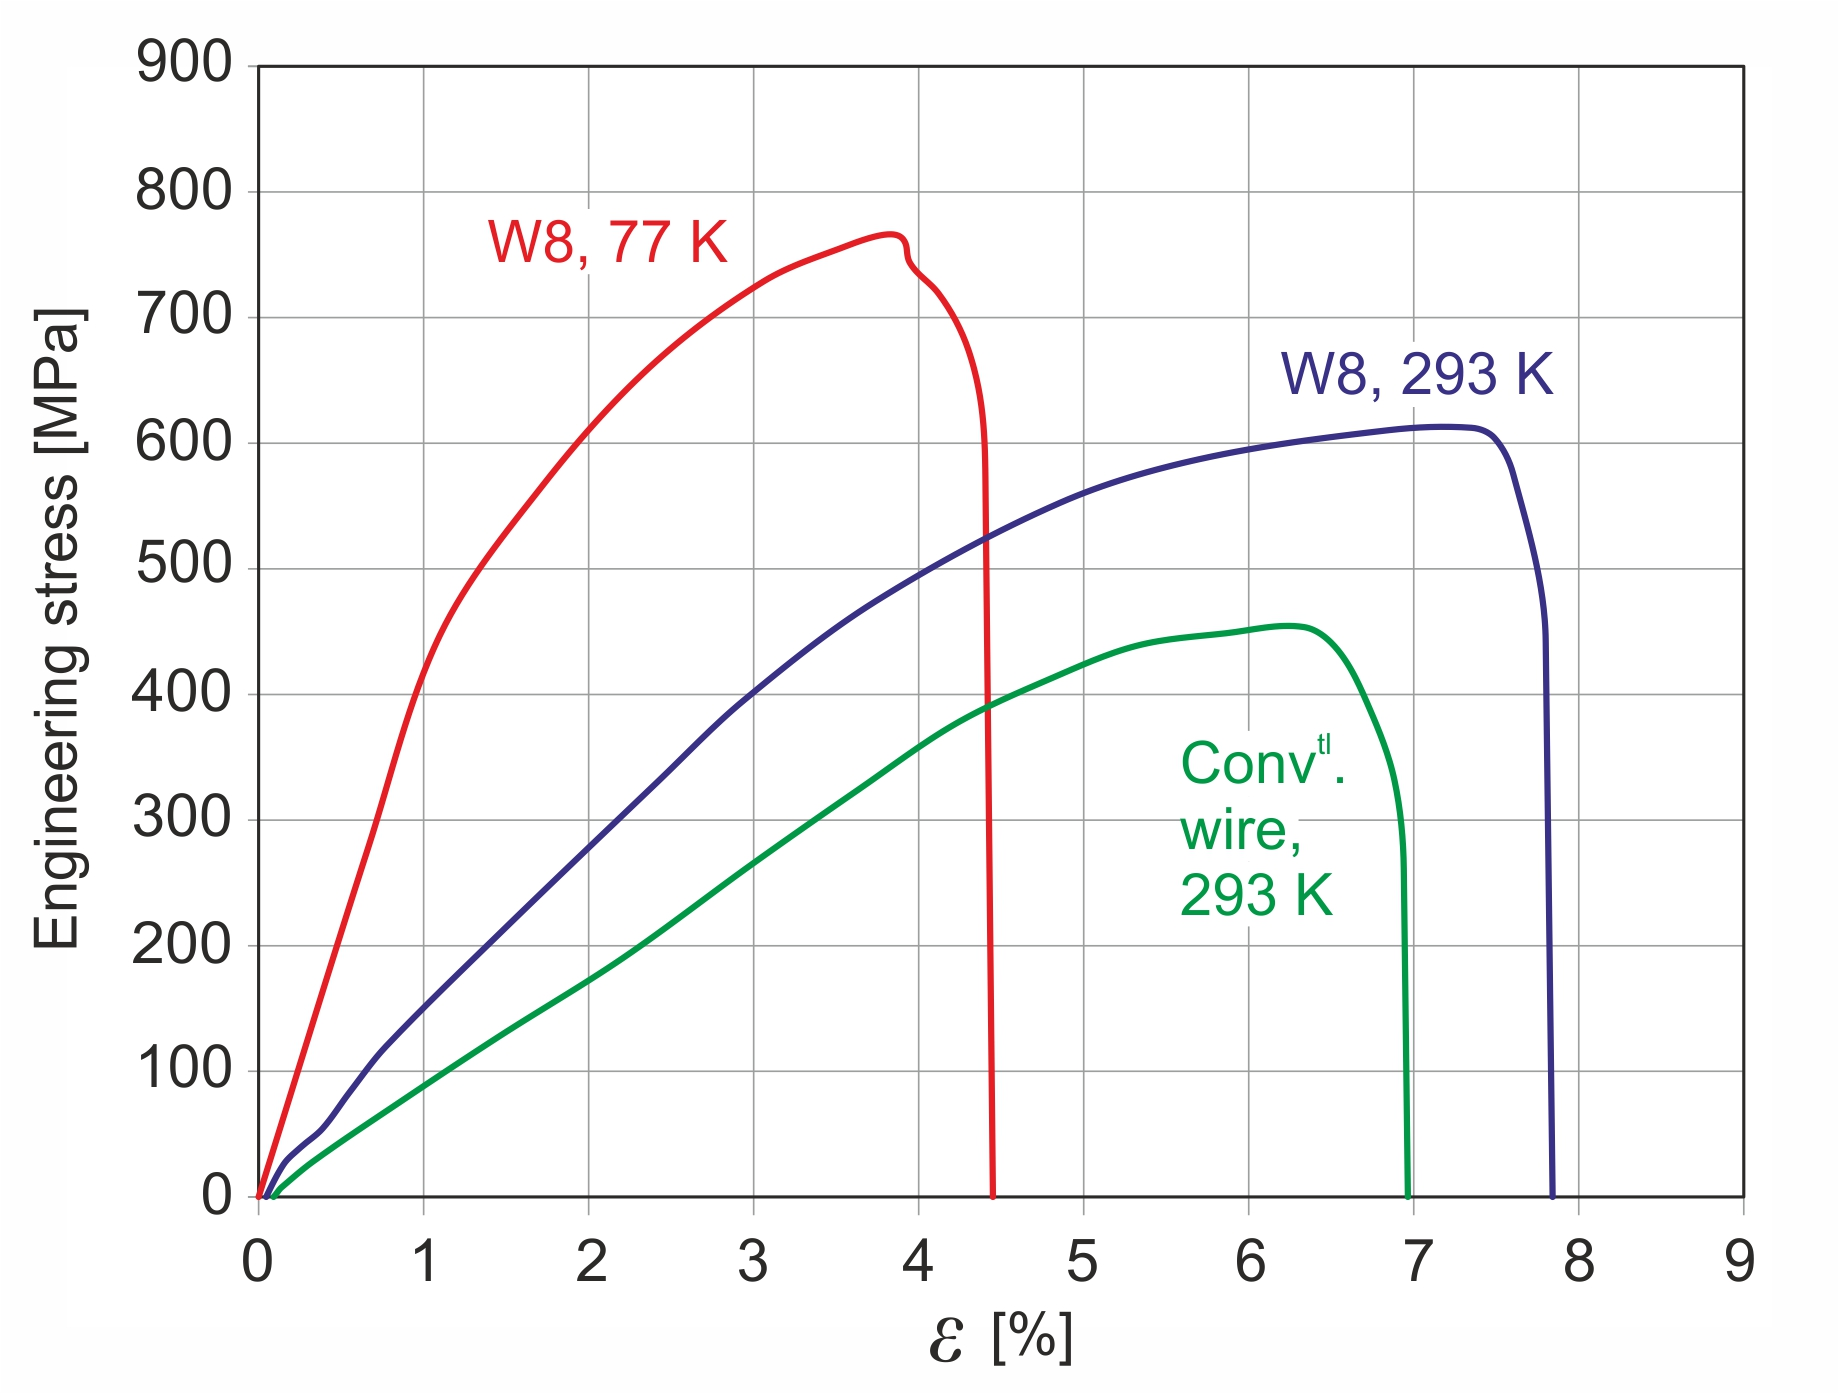 Cuofe Tensile Stress Strain Diagram Stressstrain Curves At 293 And 77 K For Ofc Wire 0506 Mm In Diameter Prepared From The Sps Cylinder Corresponding Conventional